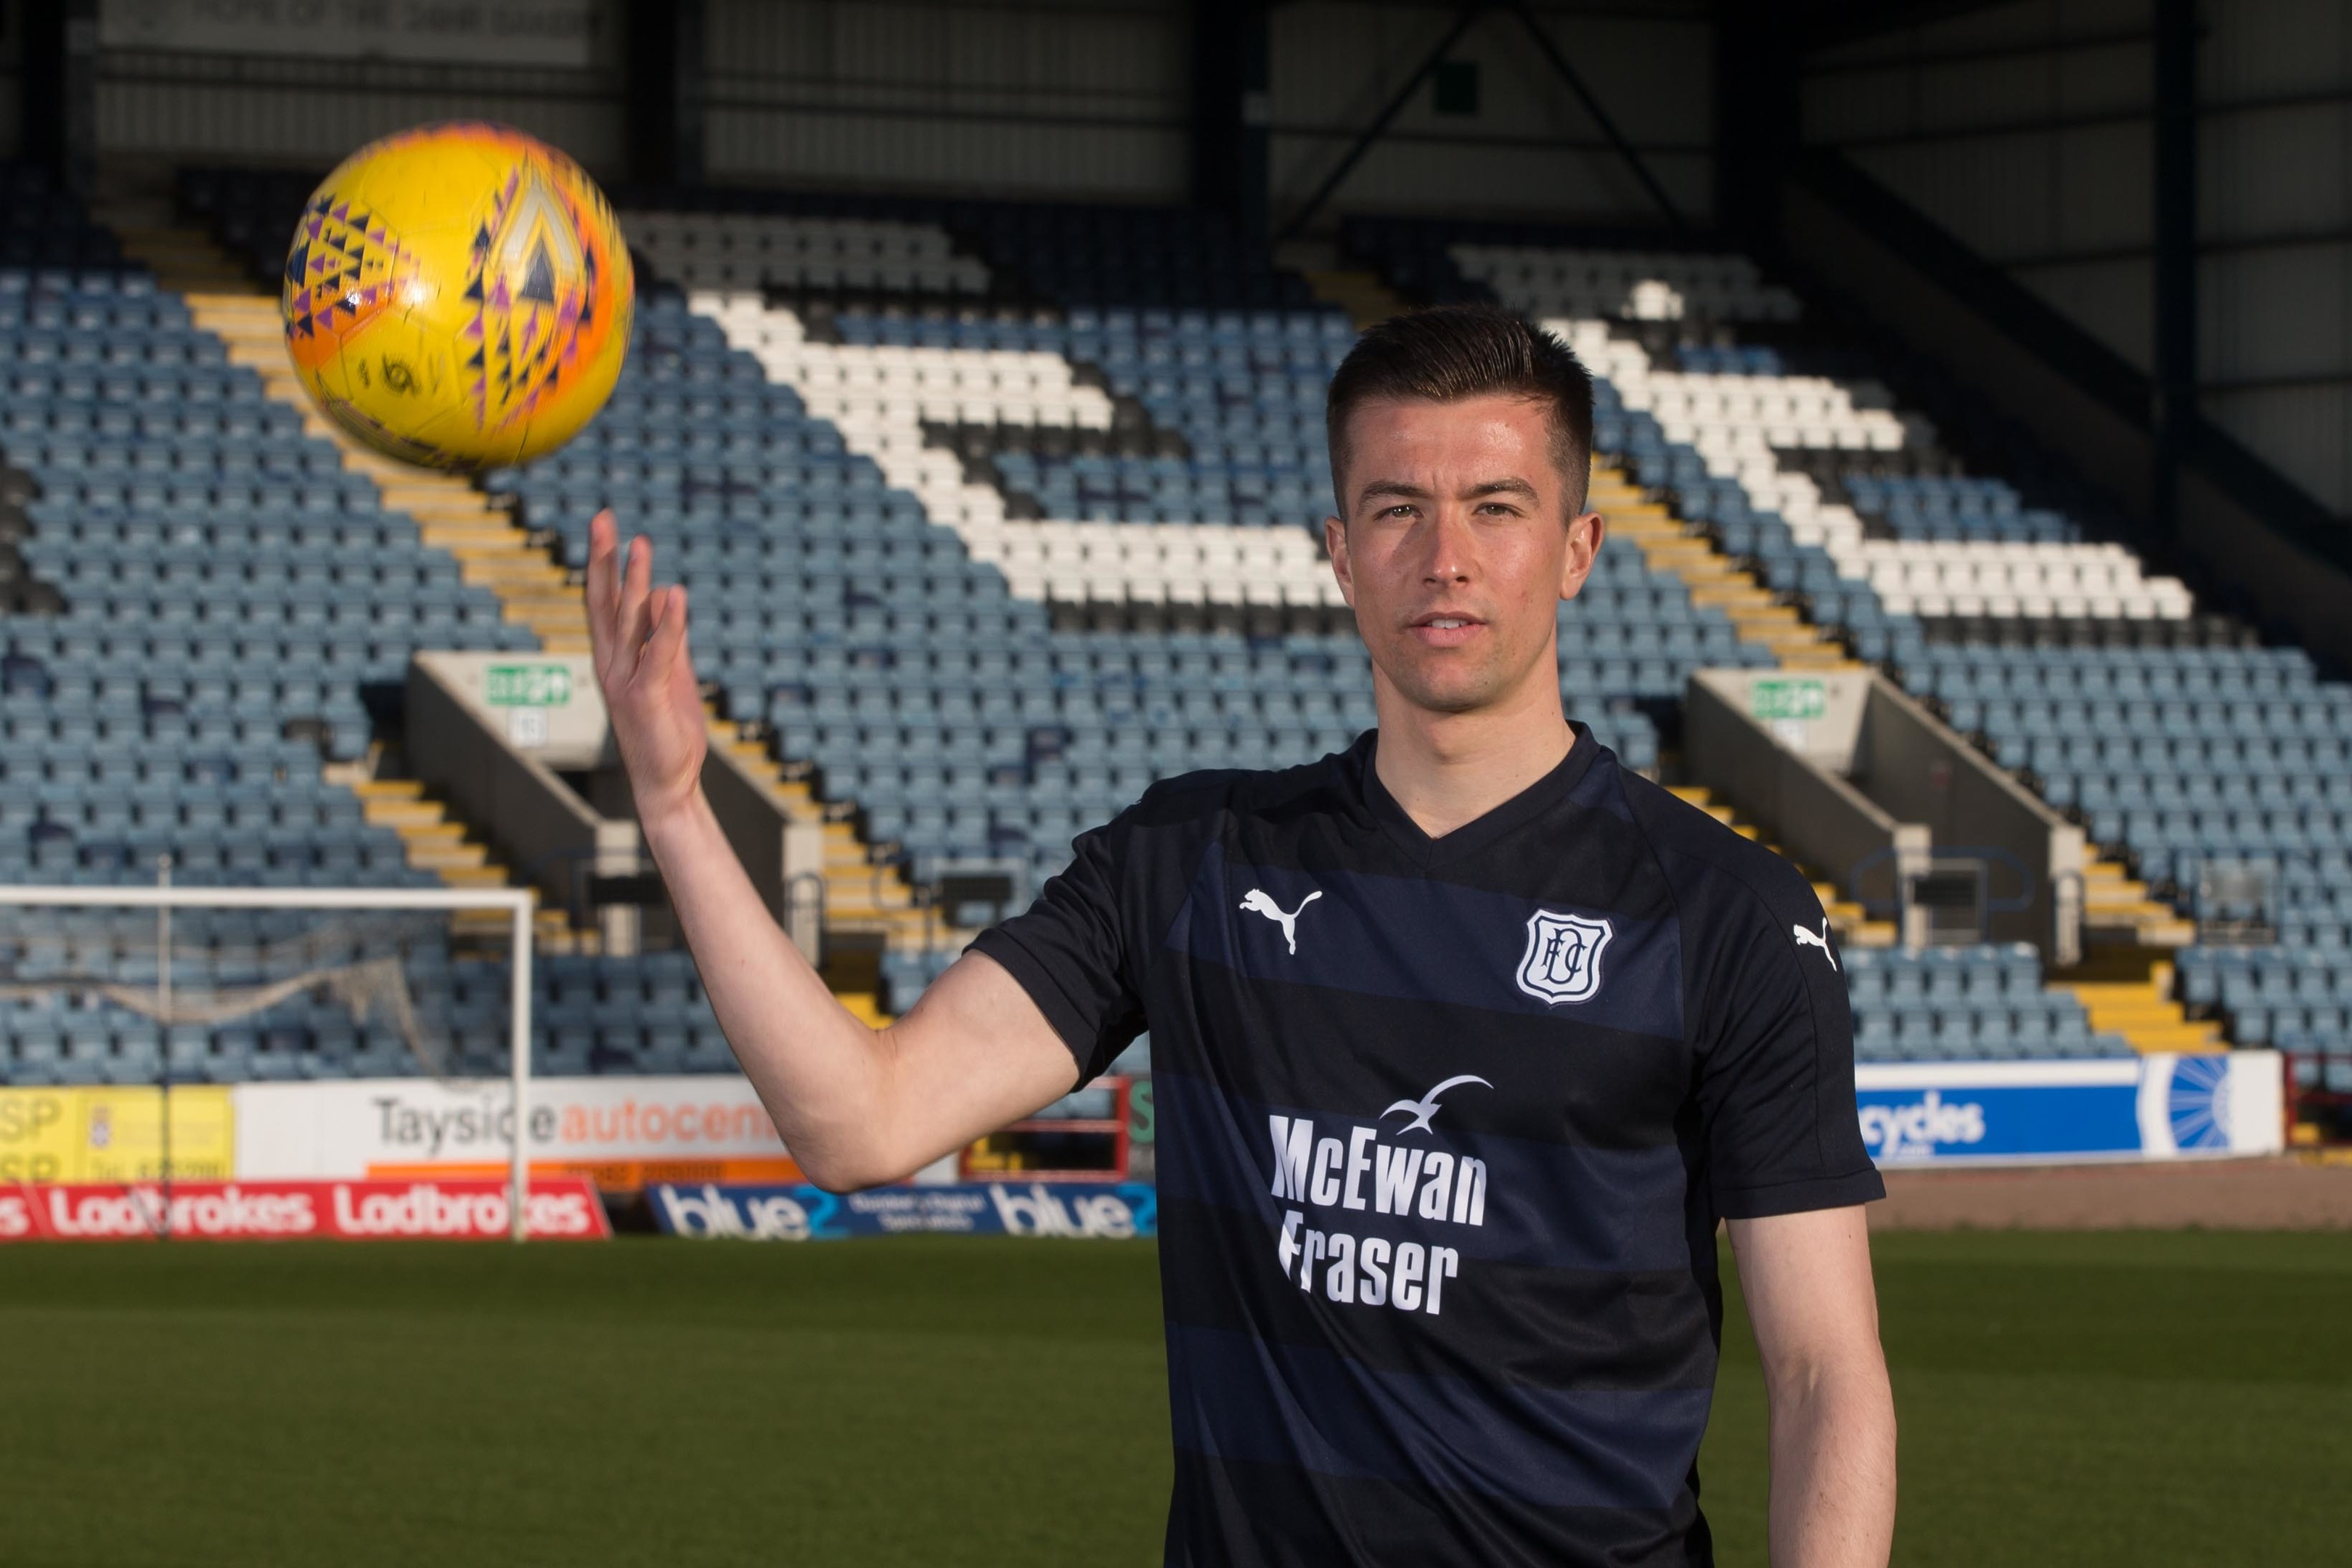 Dundee launched their new home kit for the 2018/19 season at Dens Park on Thursday.